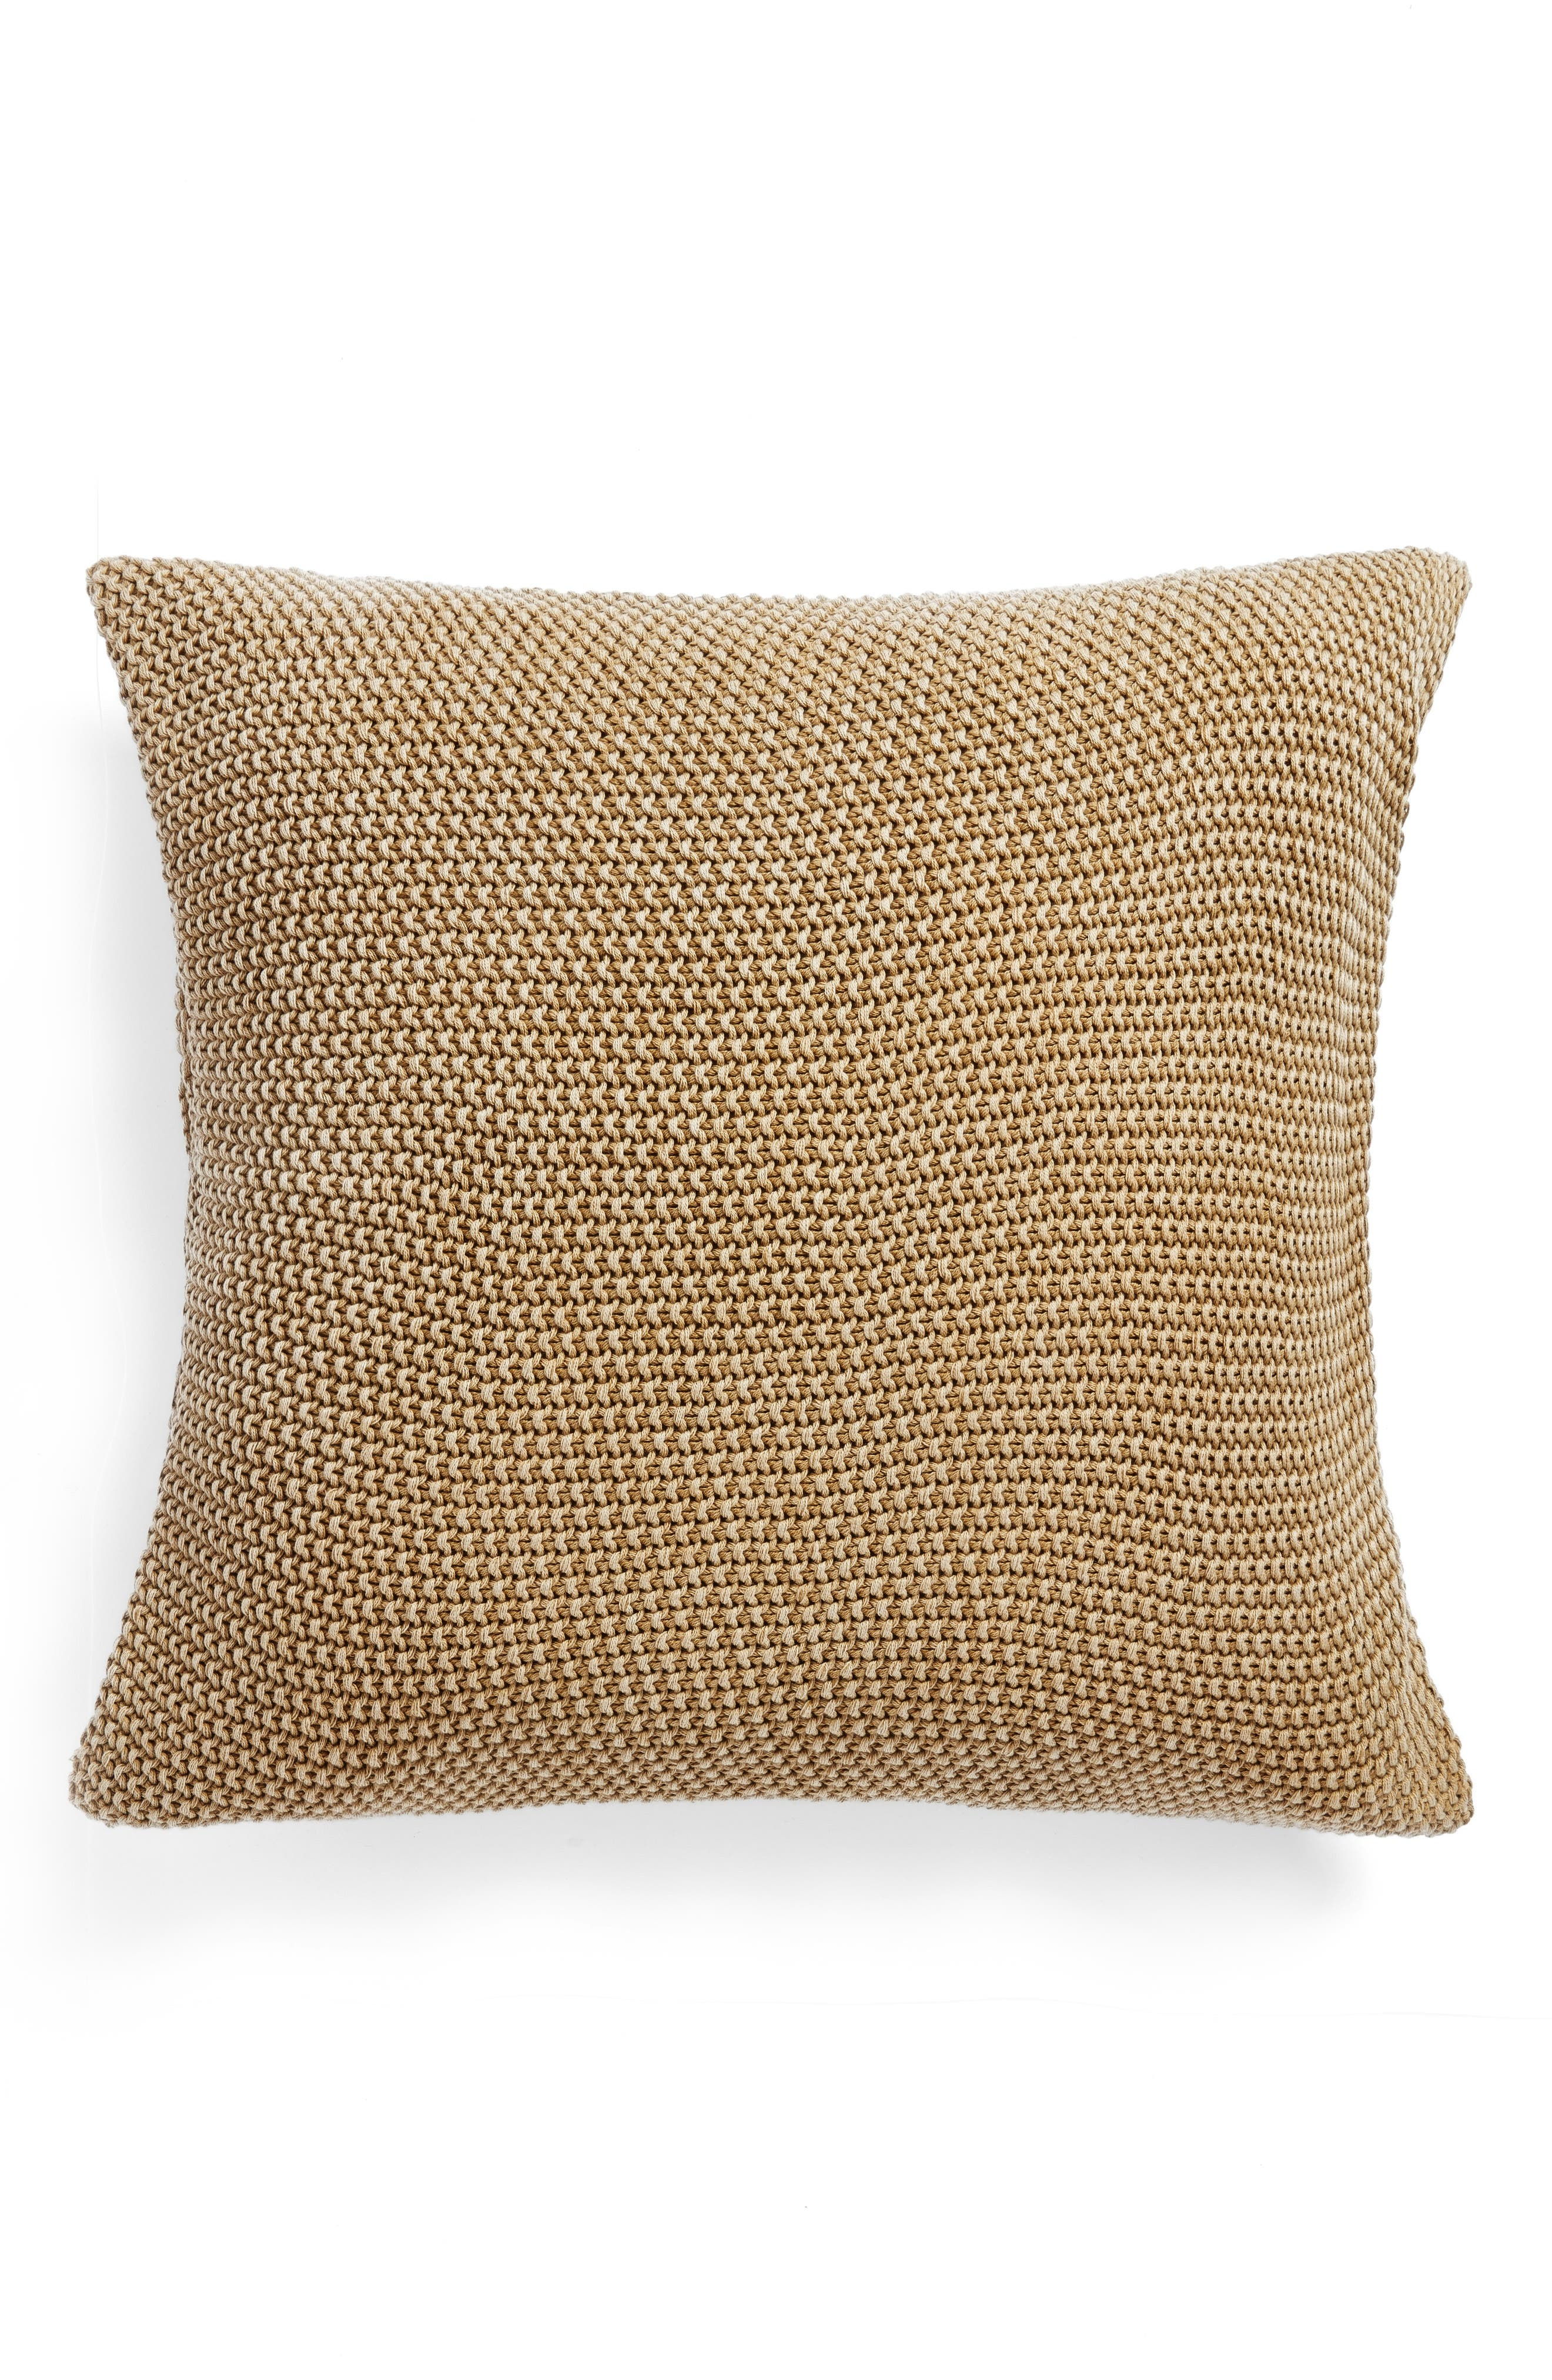 Seed Stitch Accent Pillow,                             Main thumbnail 1, color,                             300